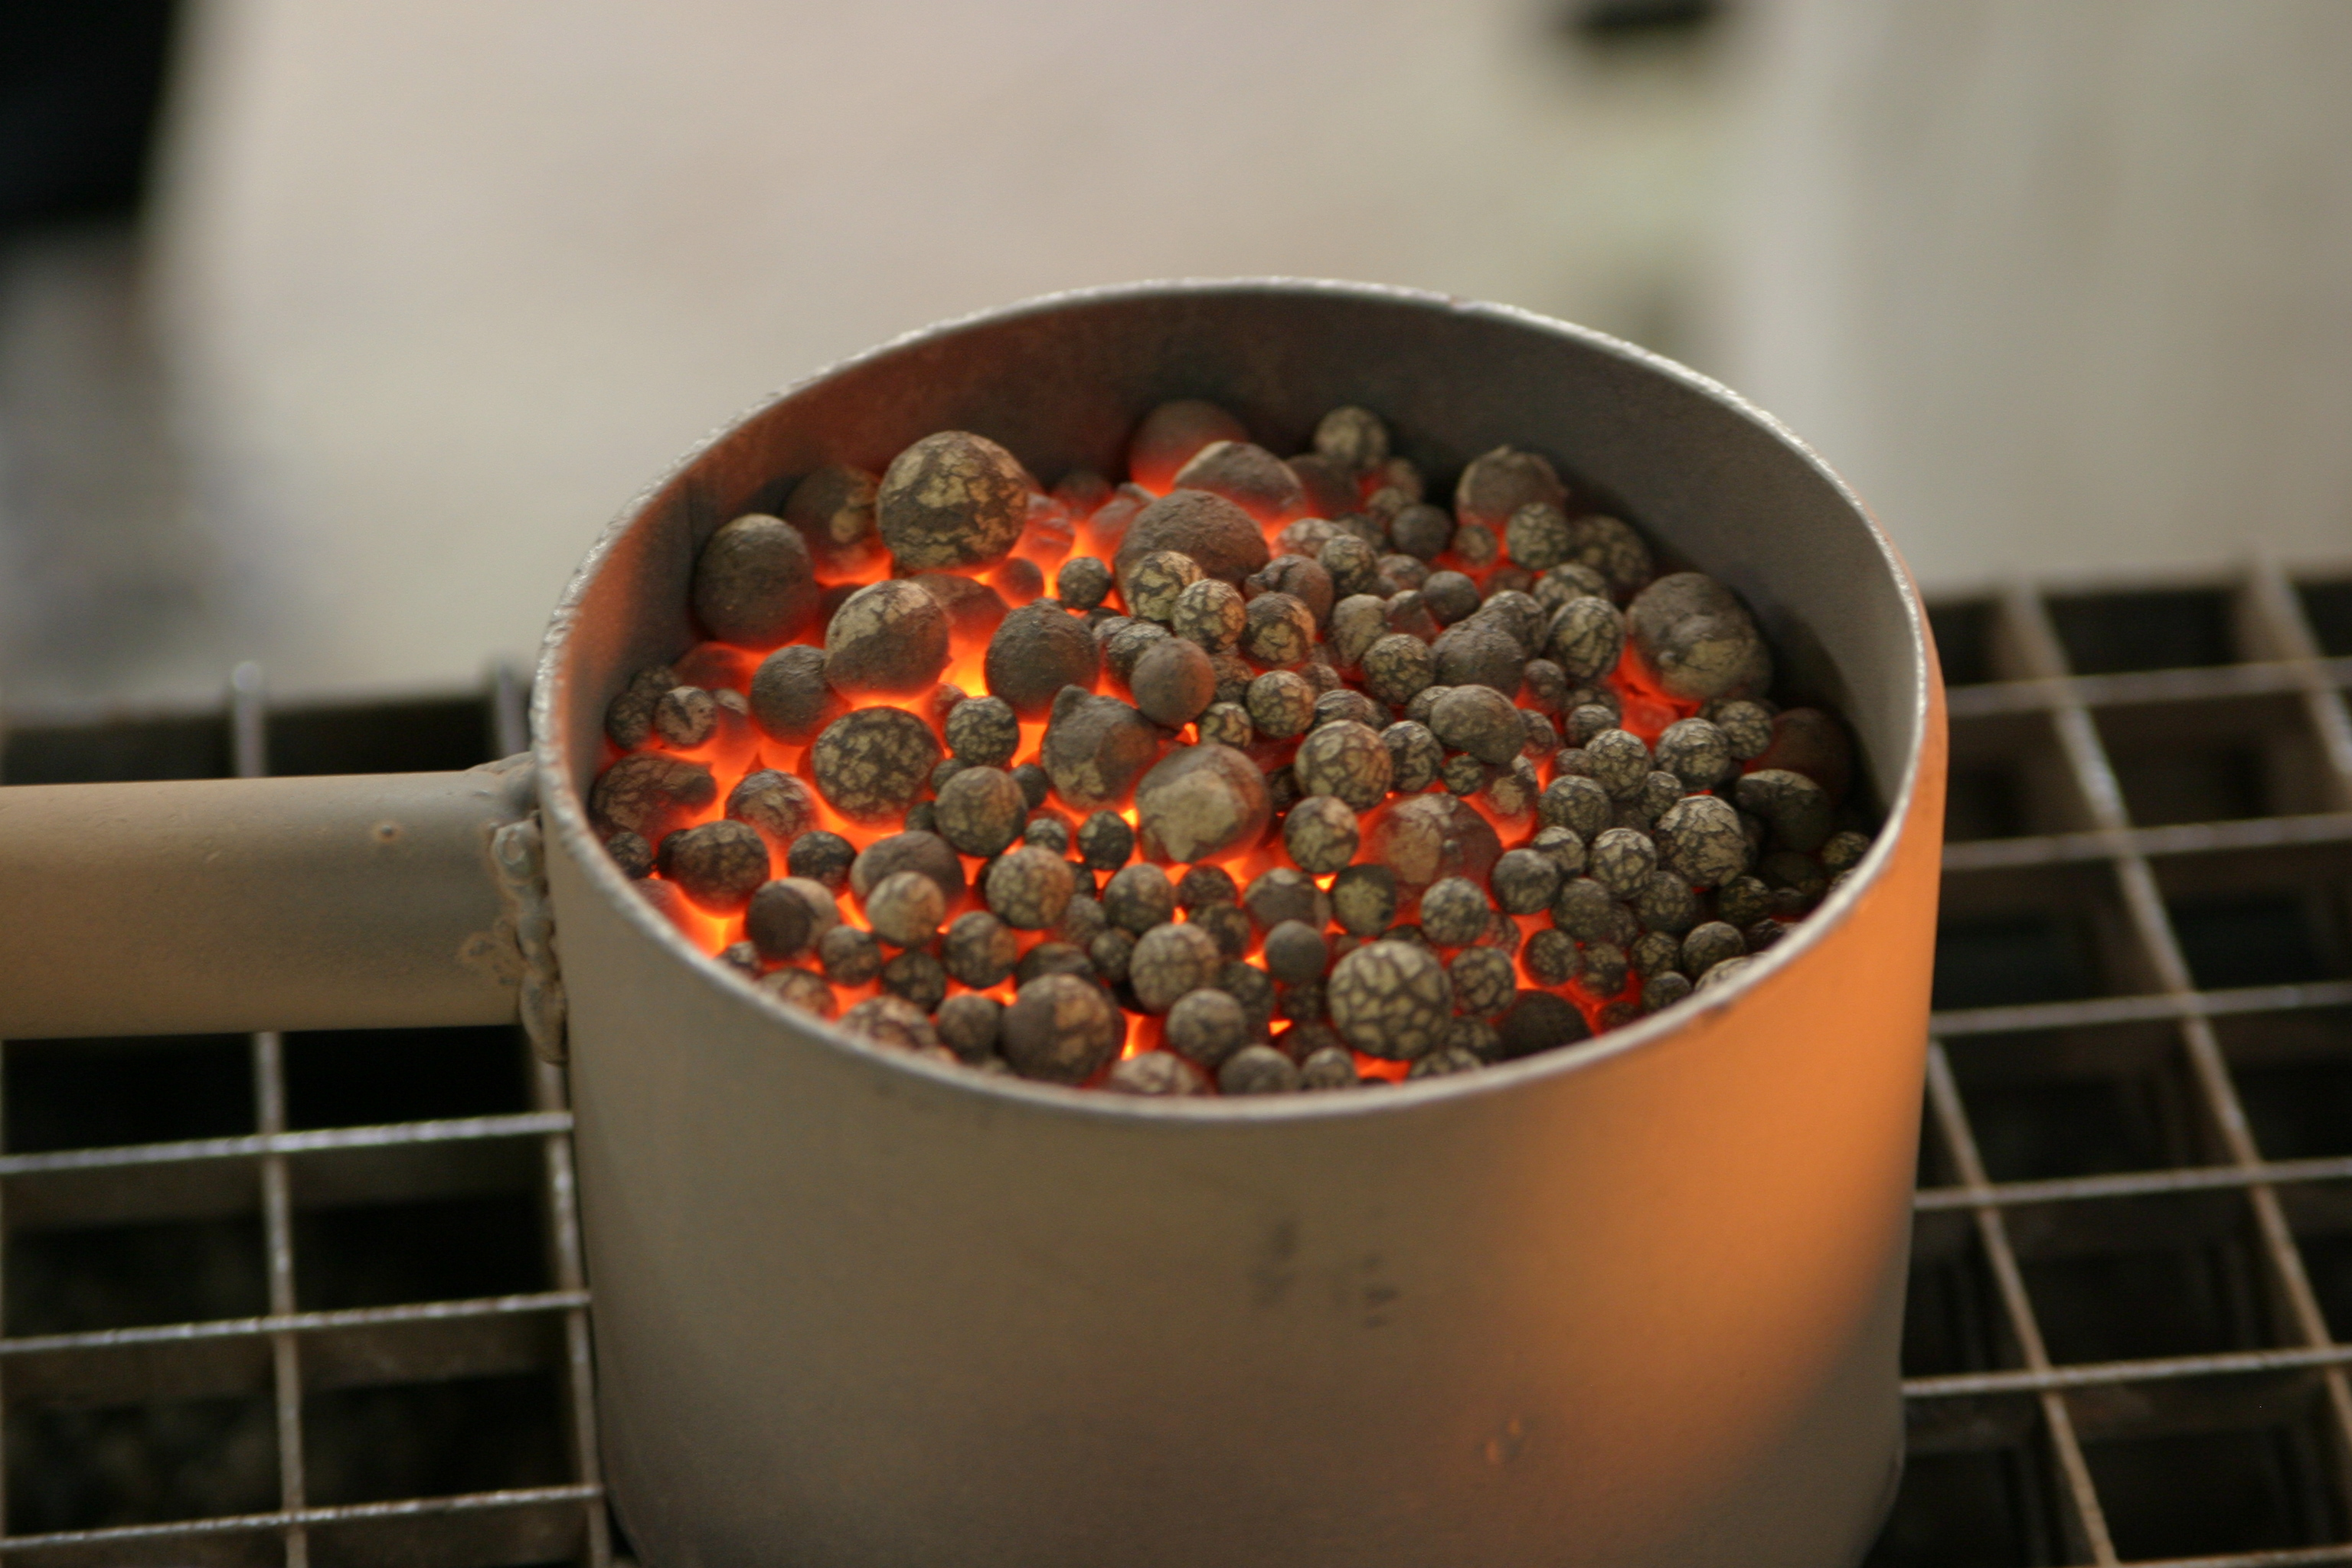 red-hot Liapor expanded clay